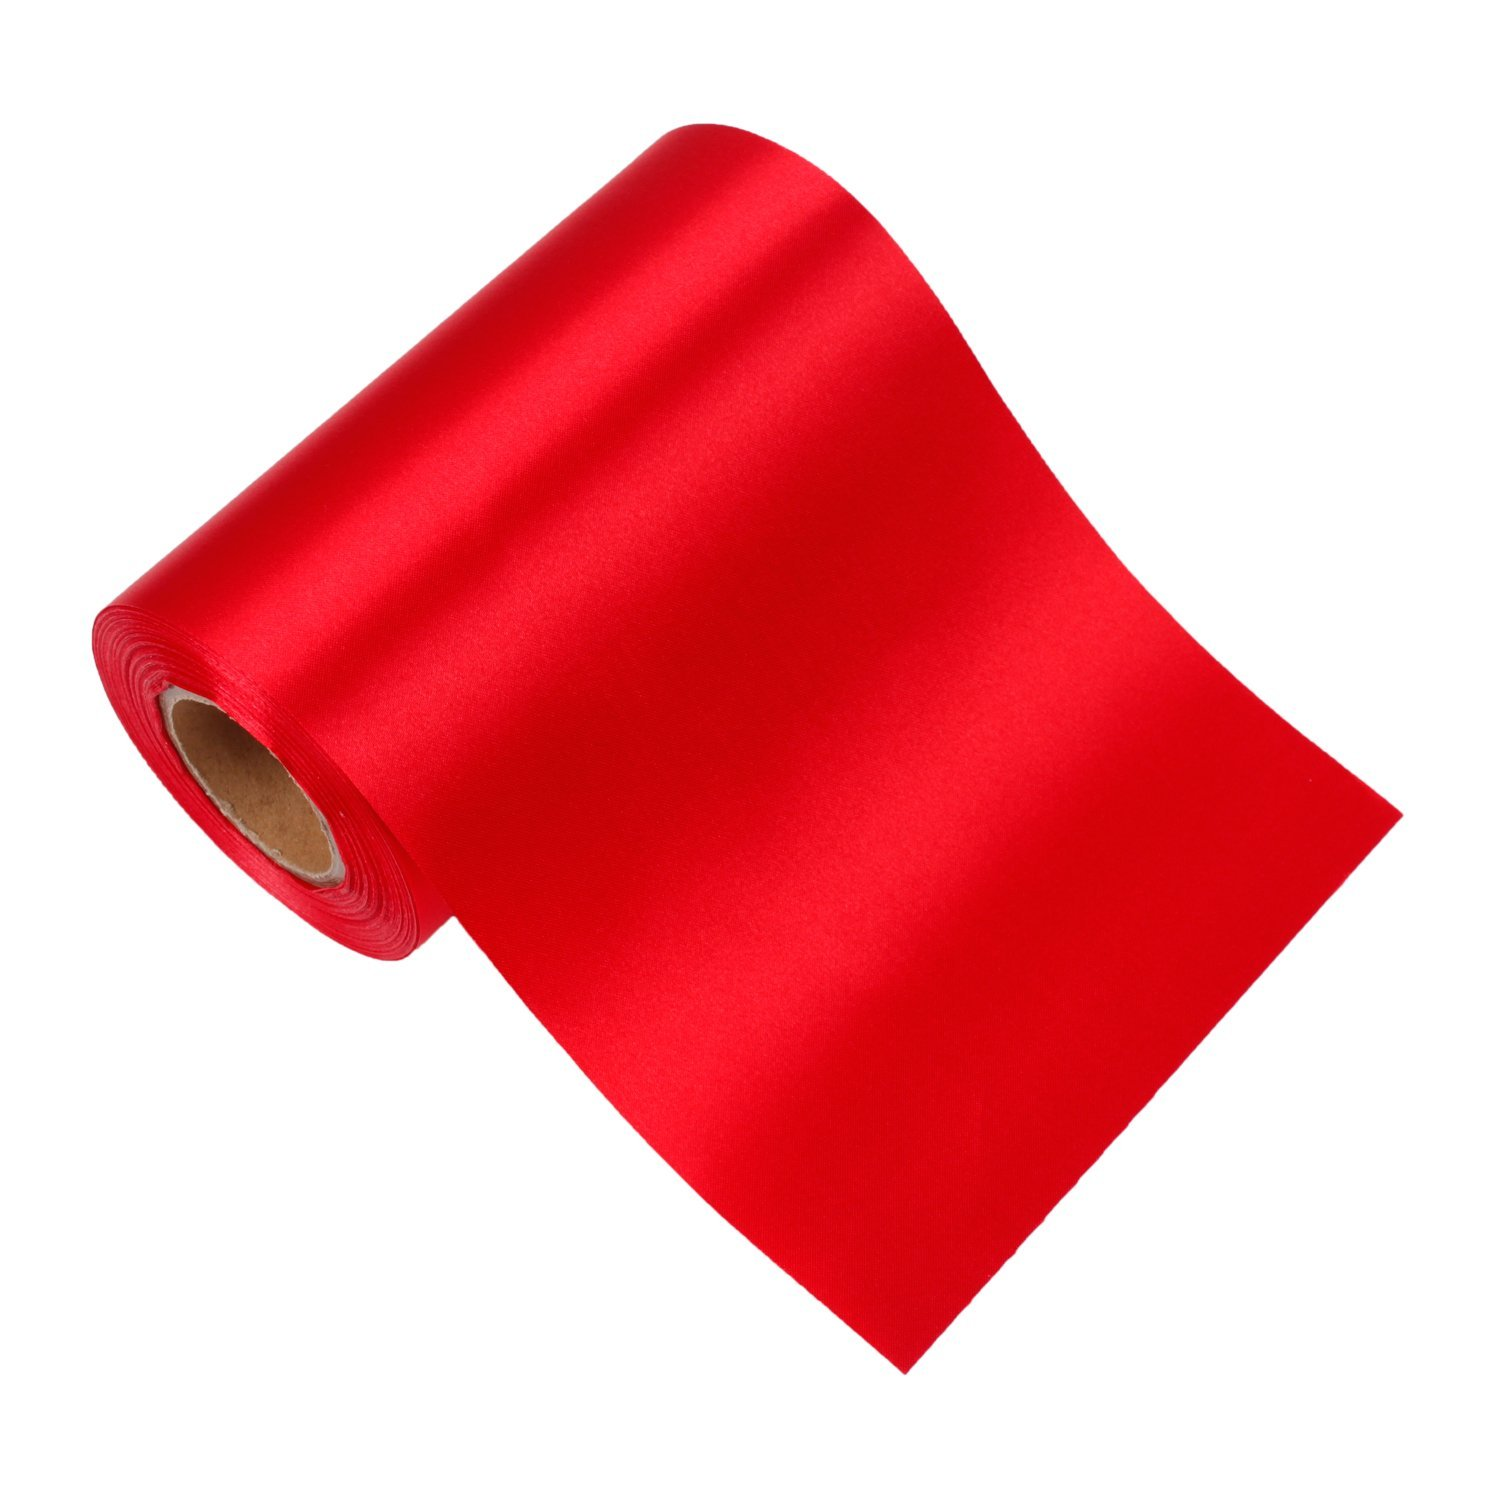 LaRibbons 6 inch Wide Grand Opening Ceremony Satin Ribbon, Wedding Party Decoration Craft Ribbon, Also for Making Car Bows - 25 Yard/Spool (Red) by LaRibbons